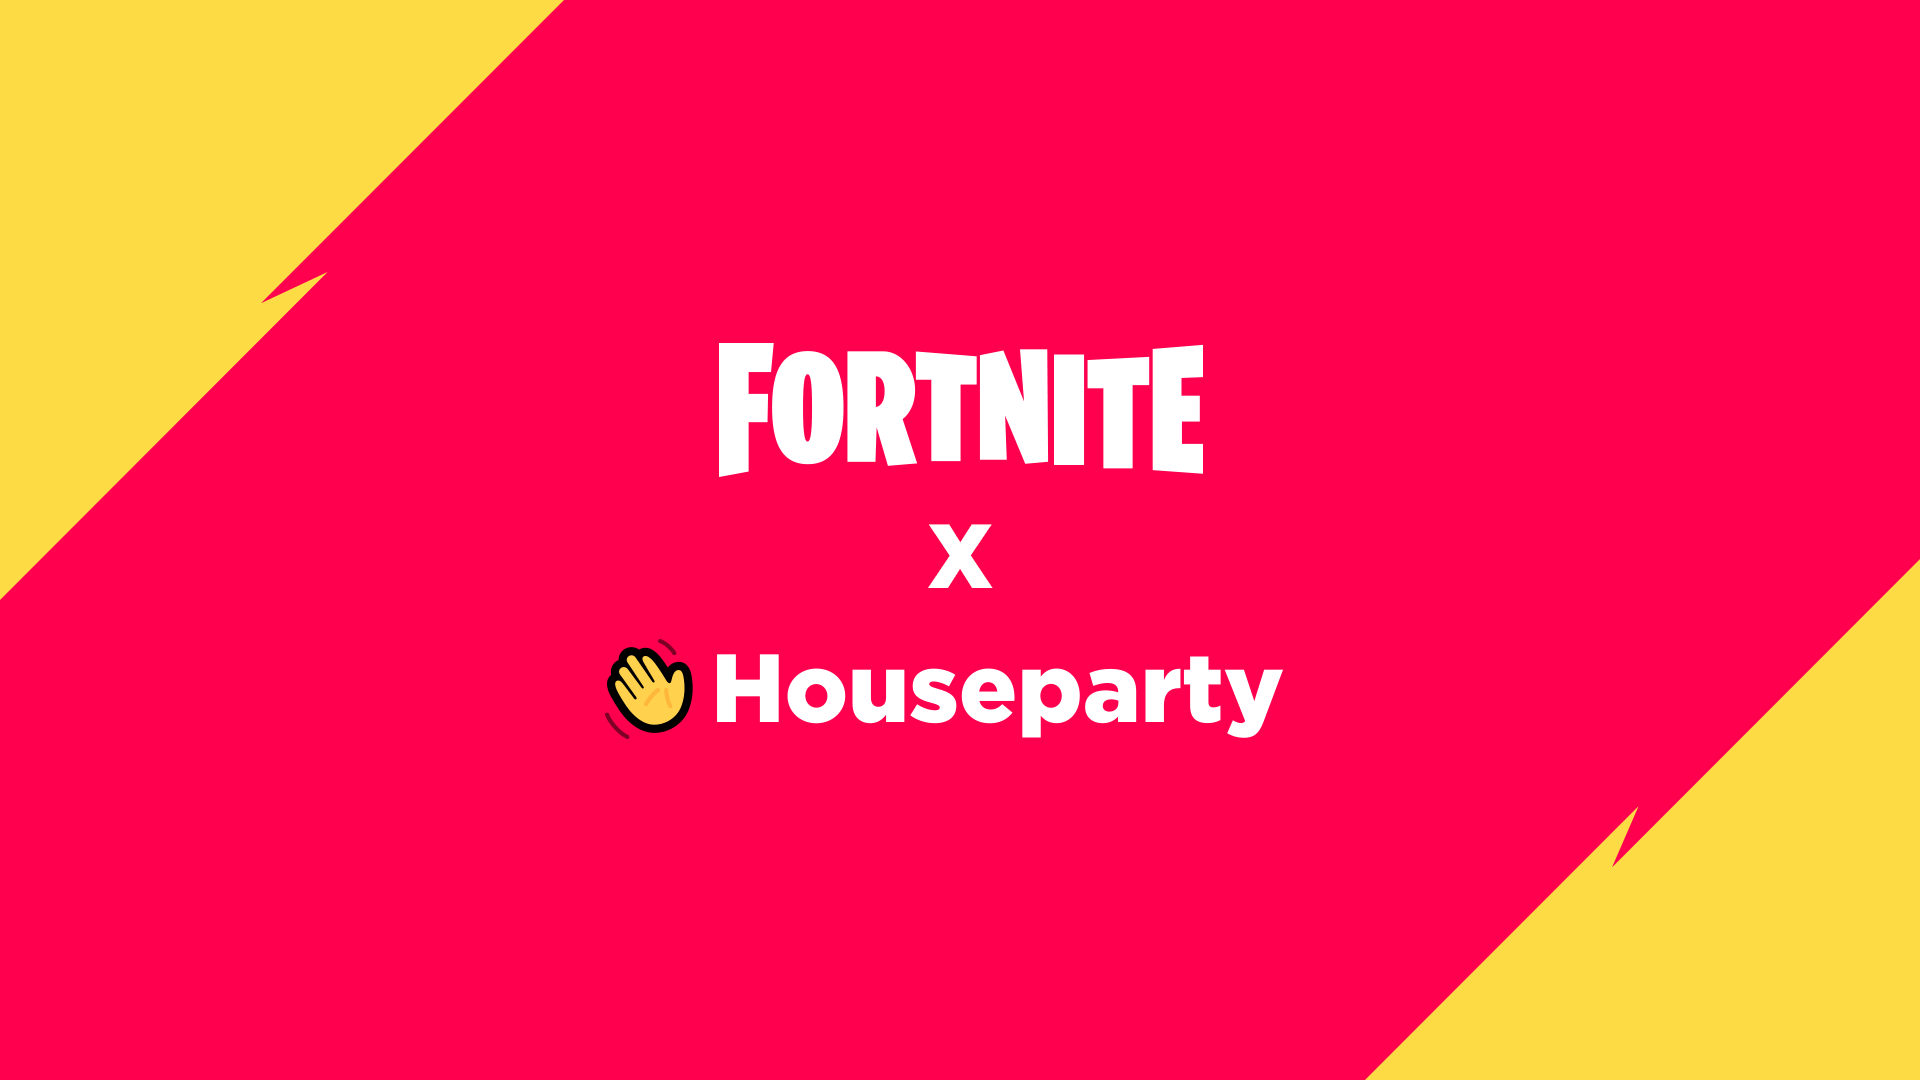 Houseparty Brings Video Chat to Fortnite